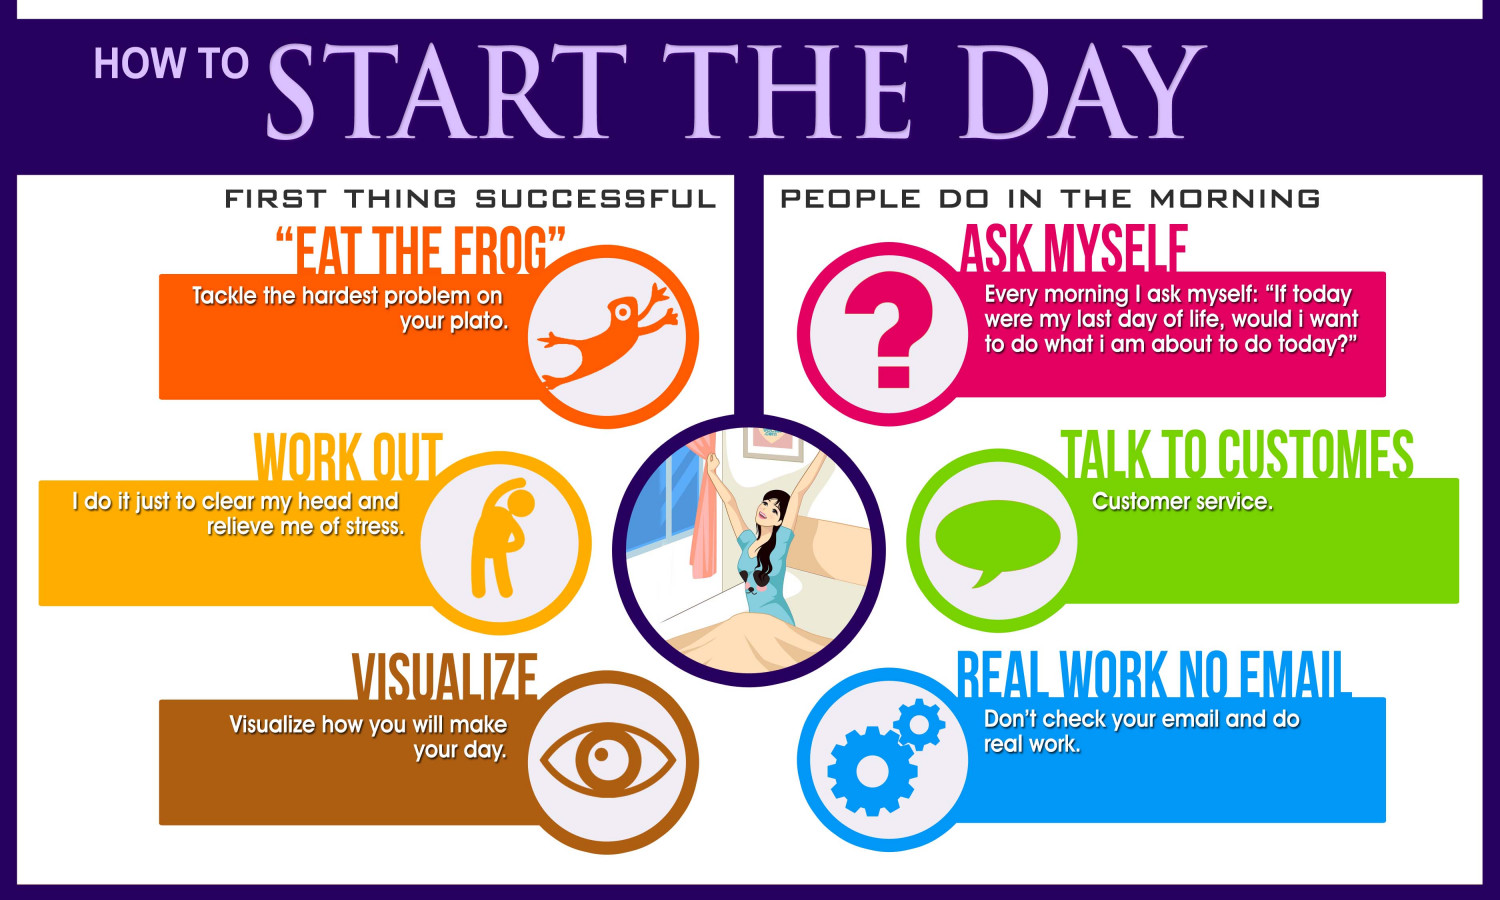 How to Start the Day Infographic